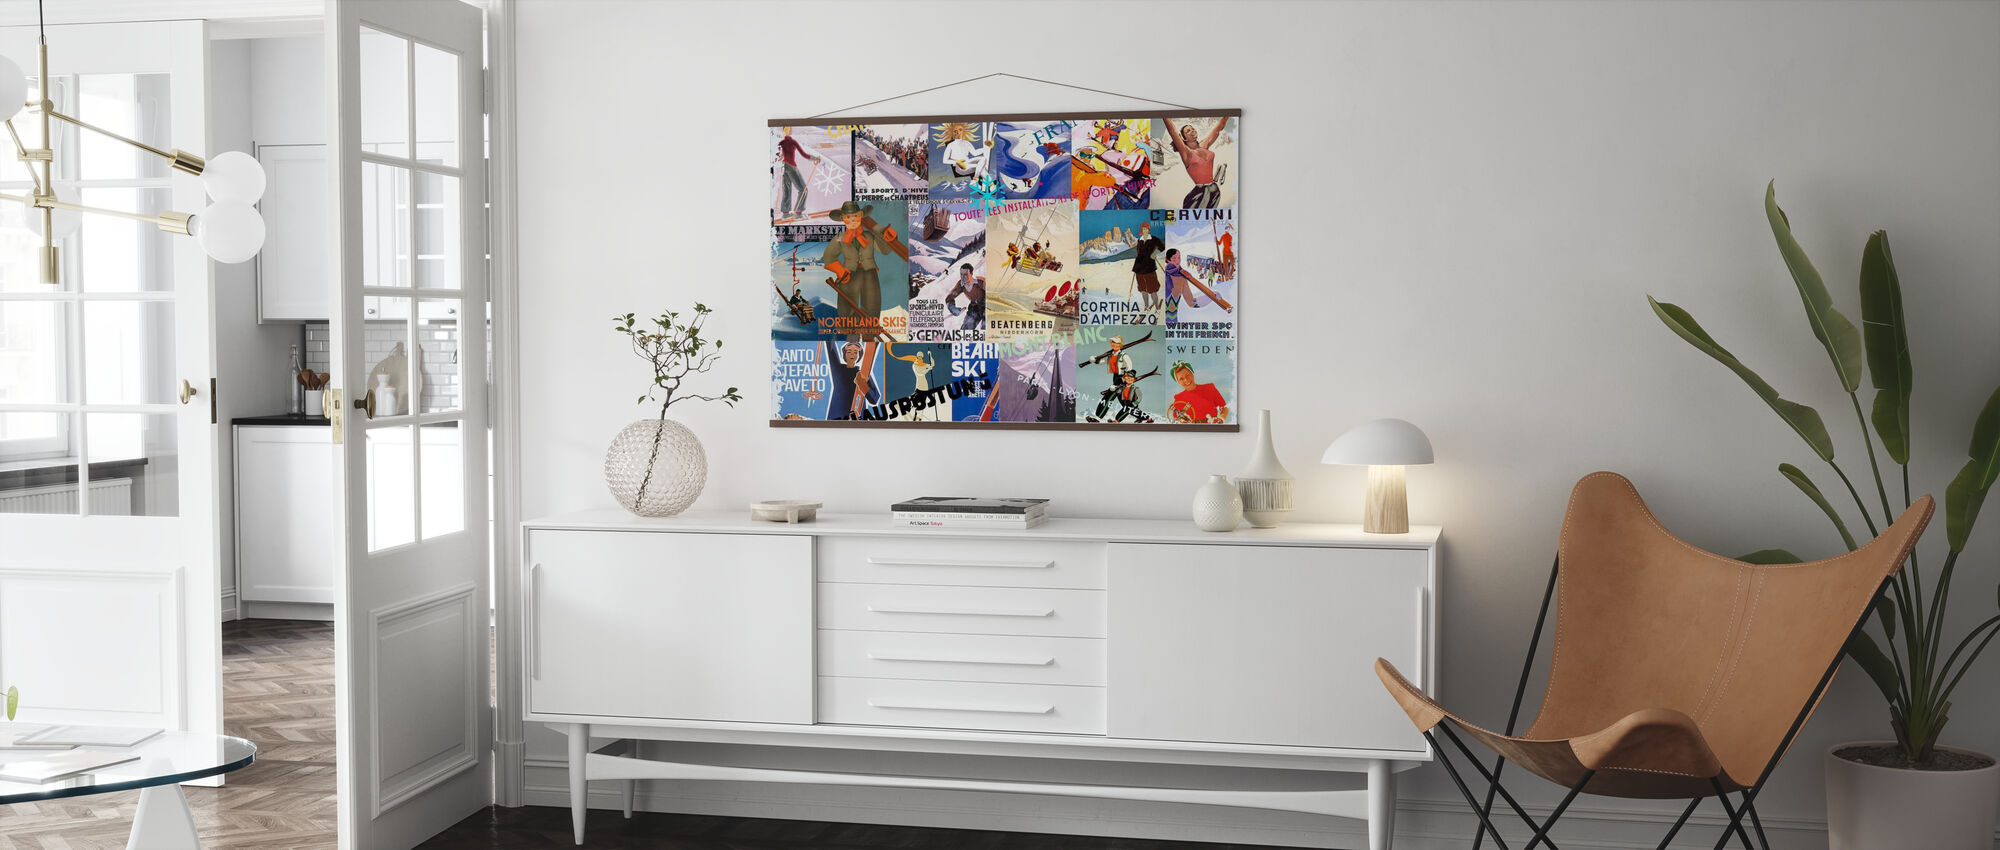 Ski Resorts Collage - Poster - Living Room